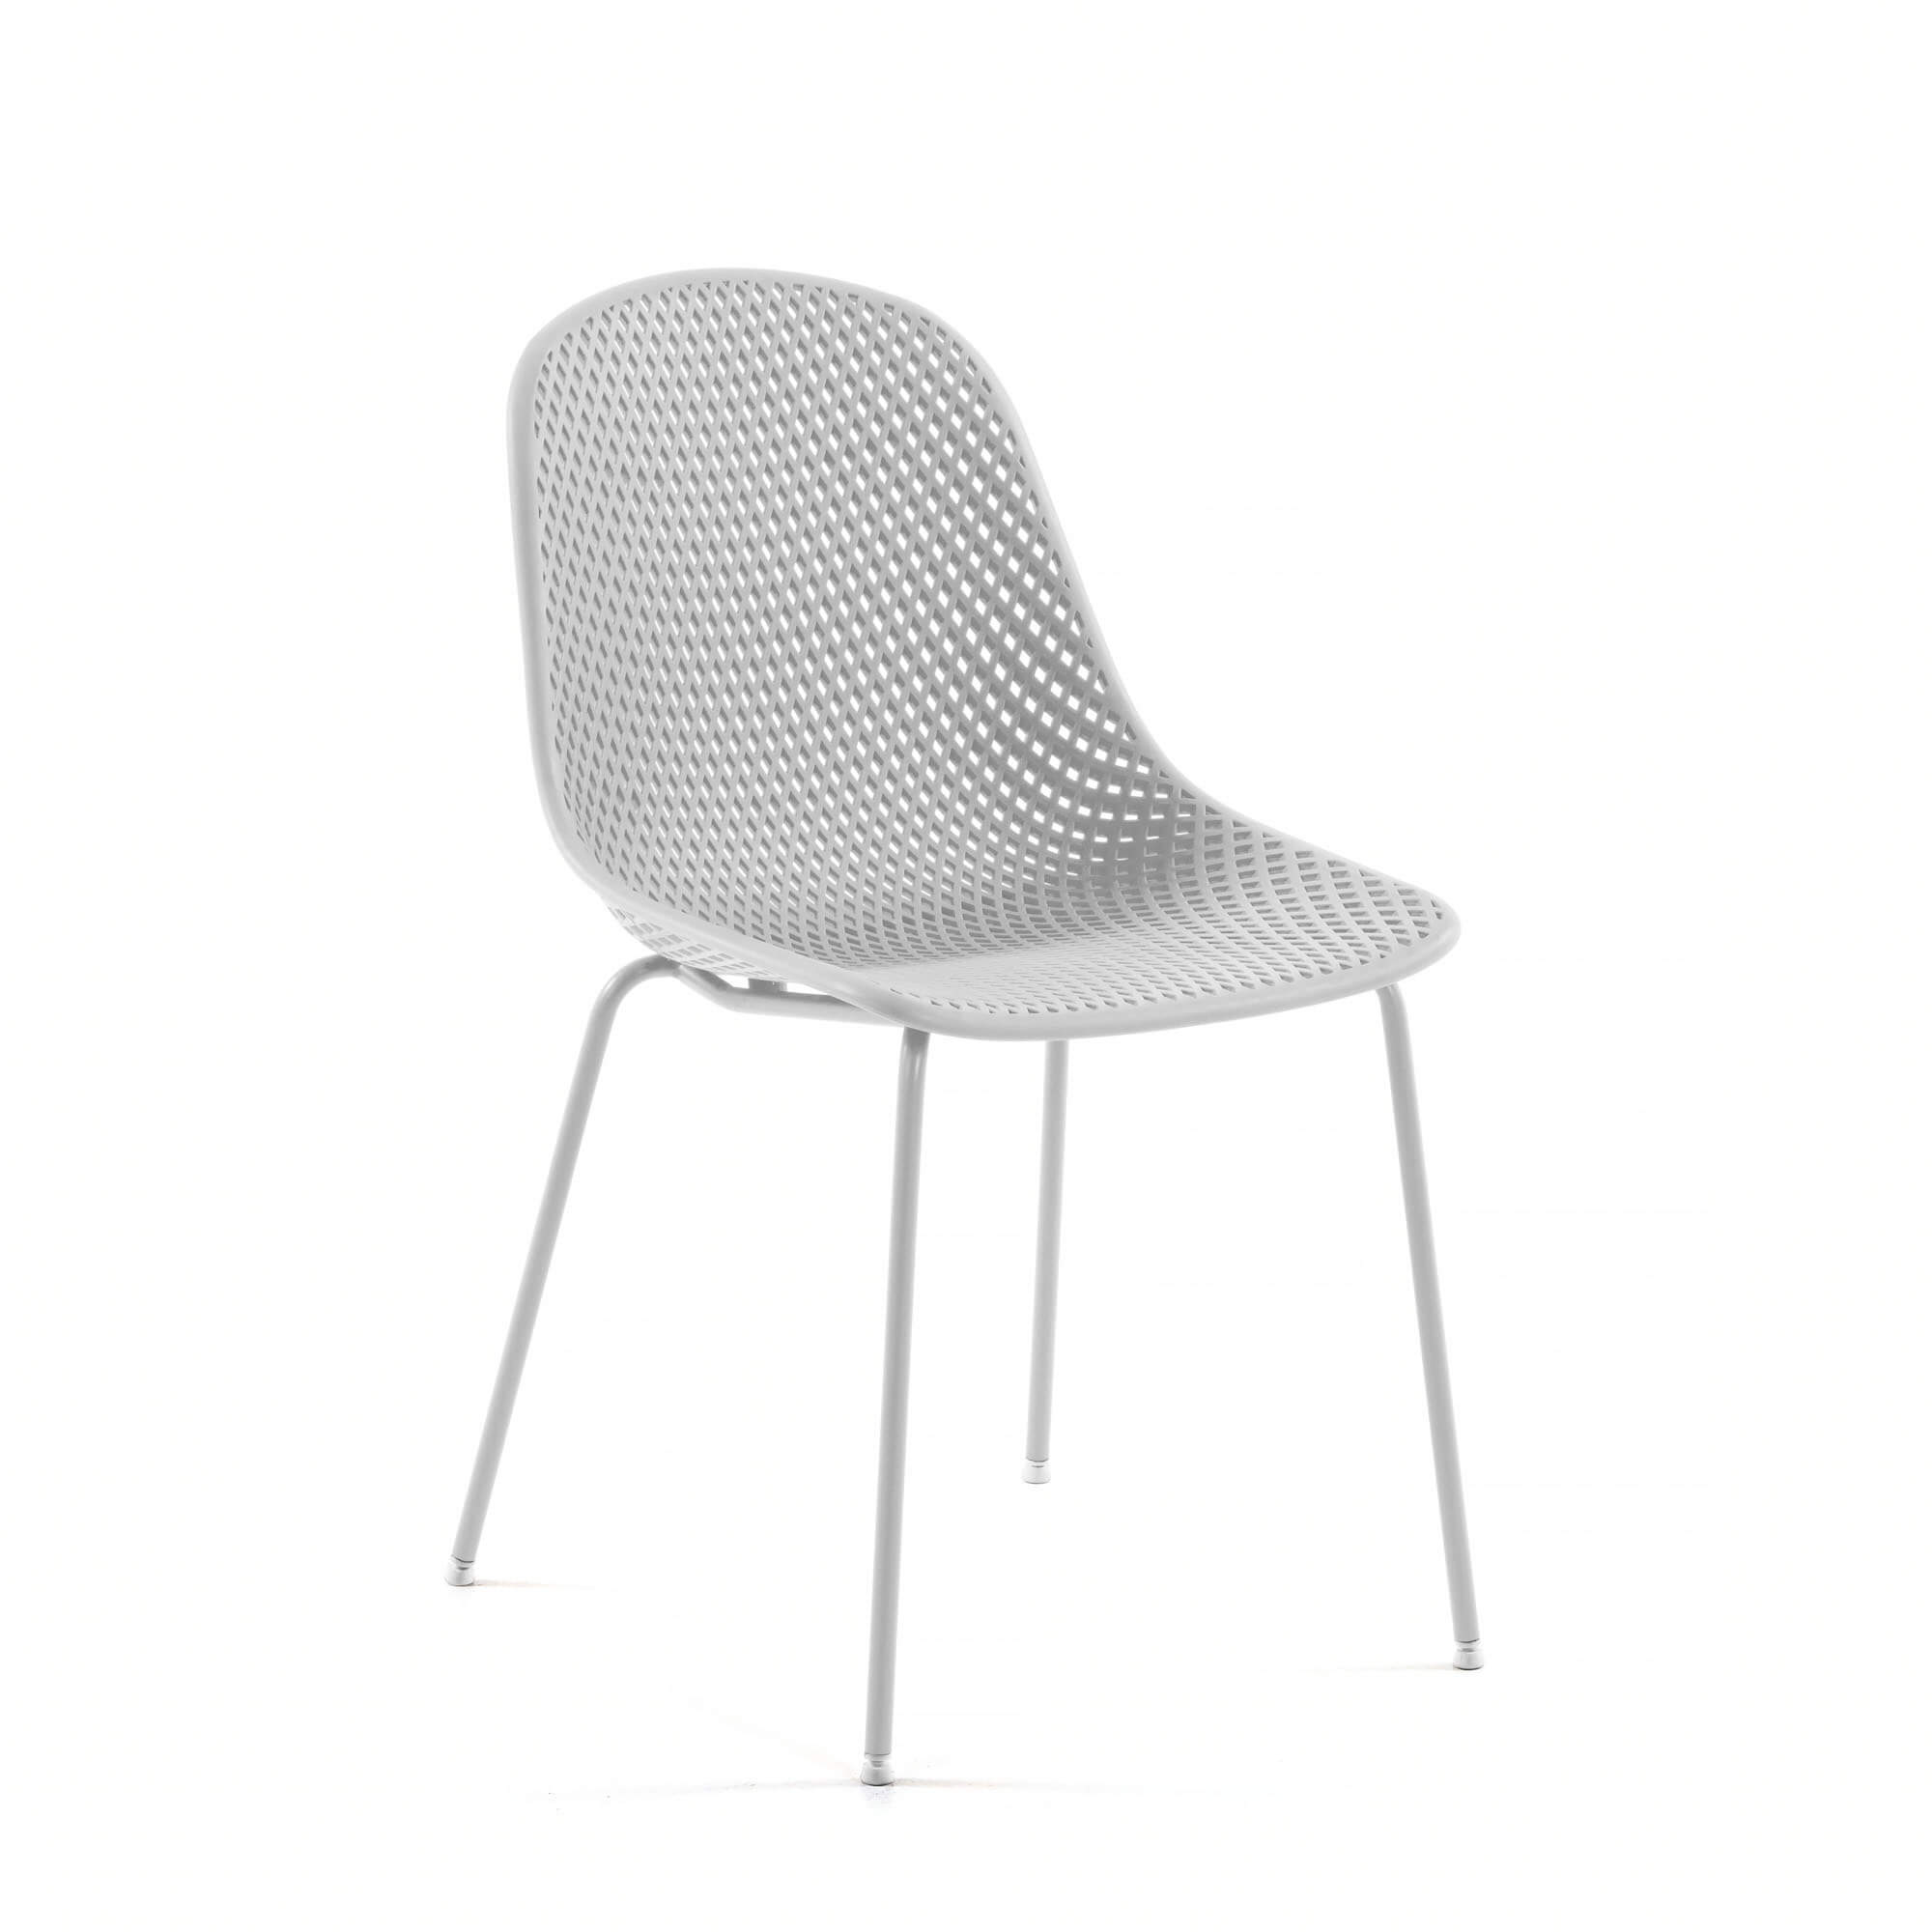 Lonsdale Patio Chair | White